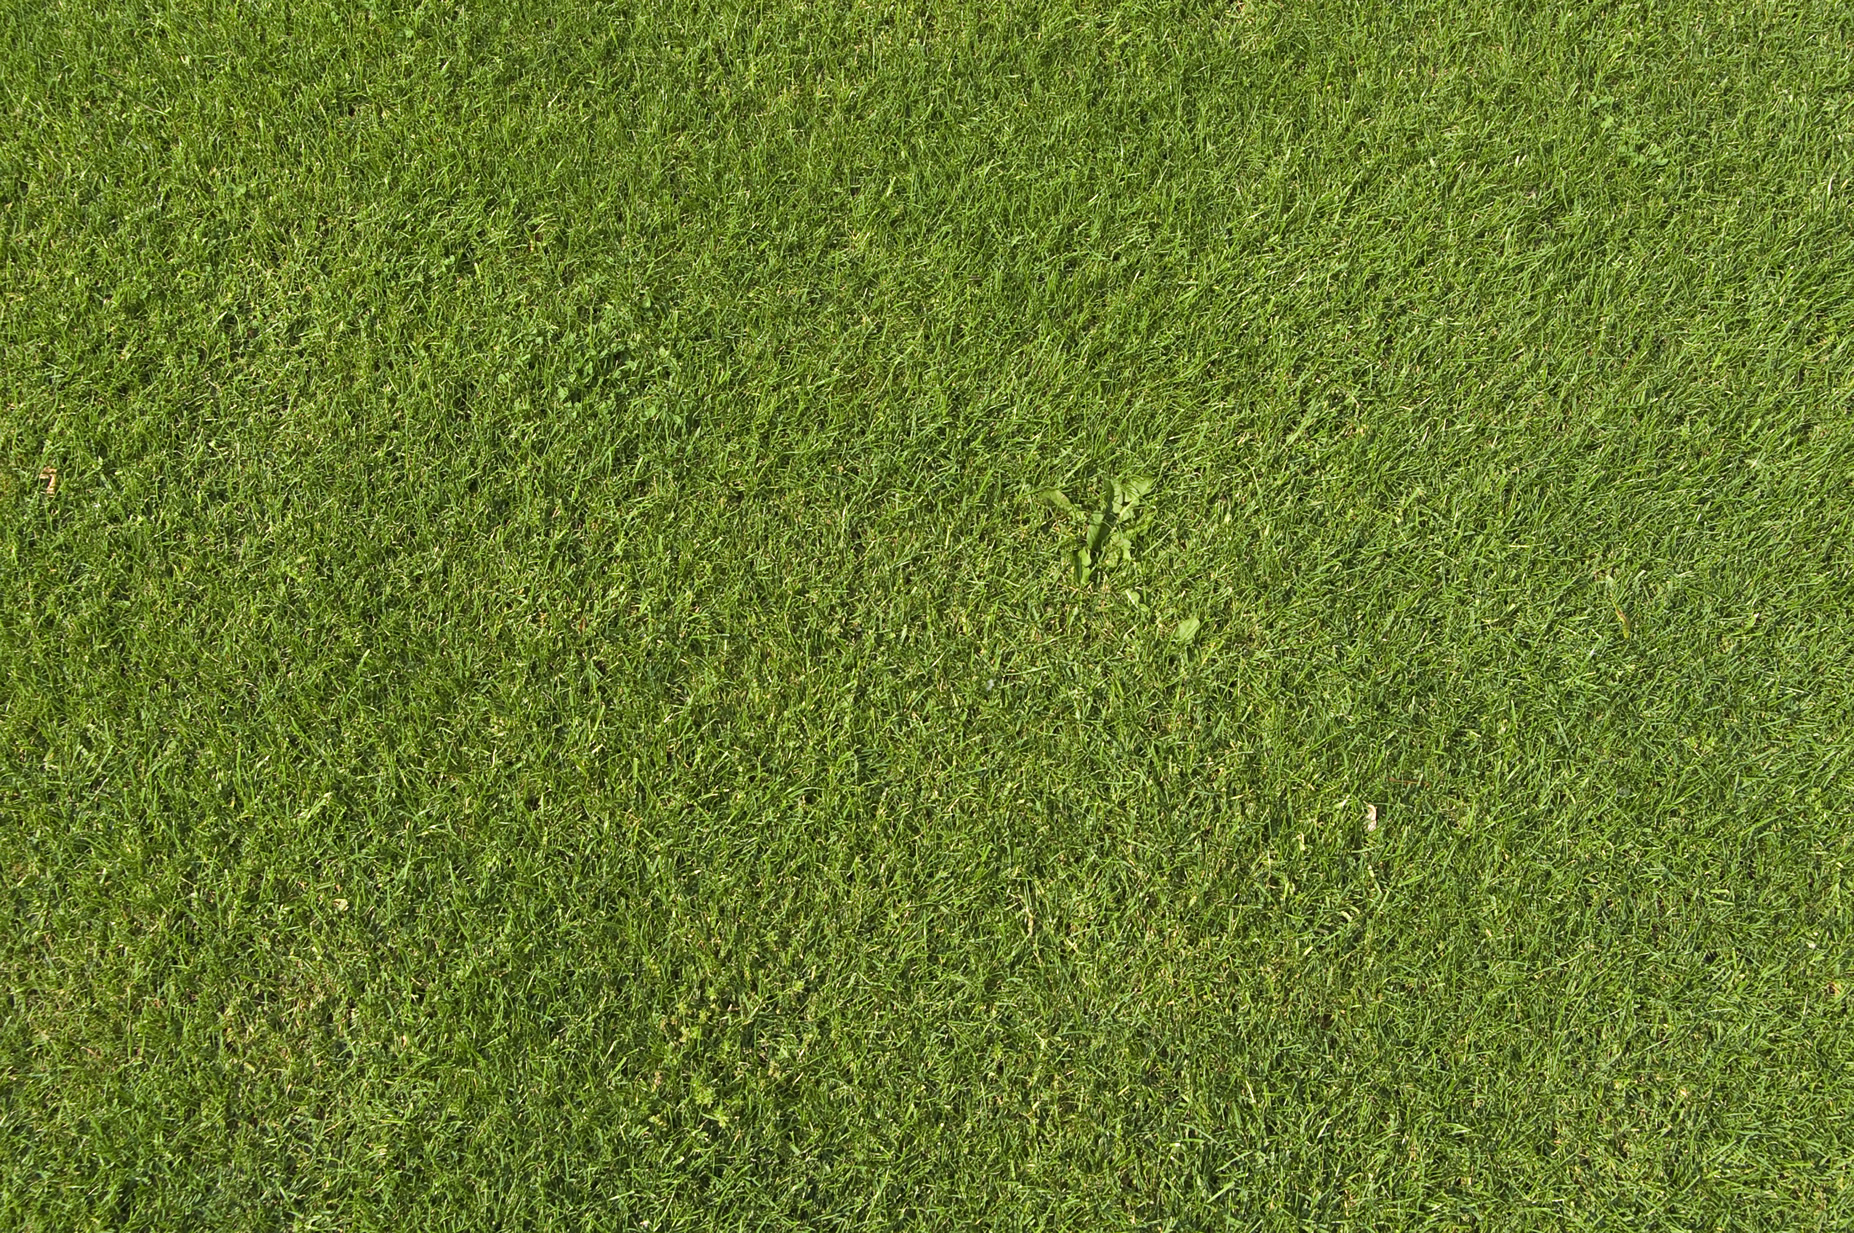 grass background texture - photo #11